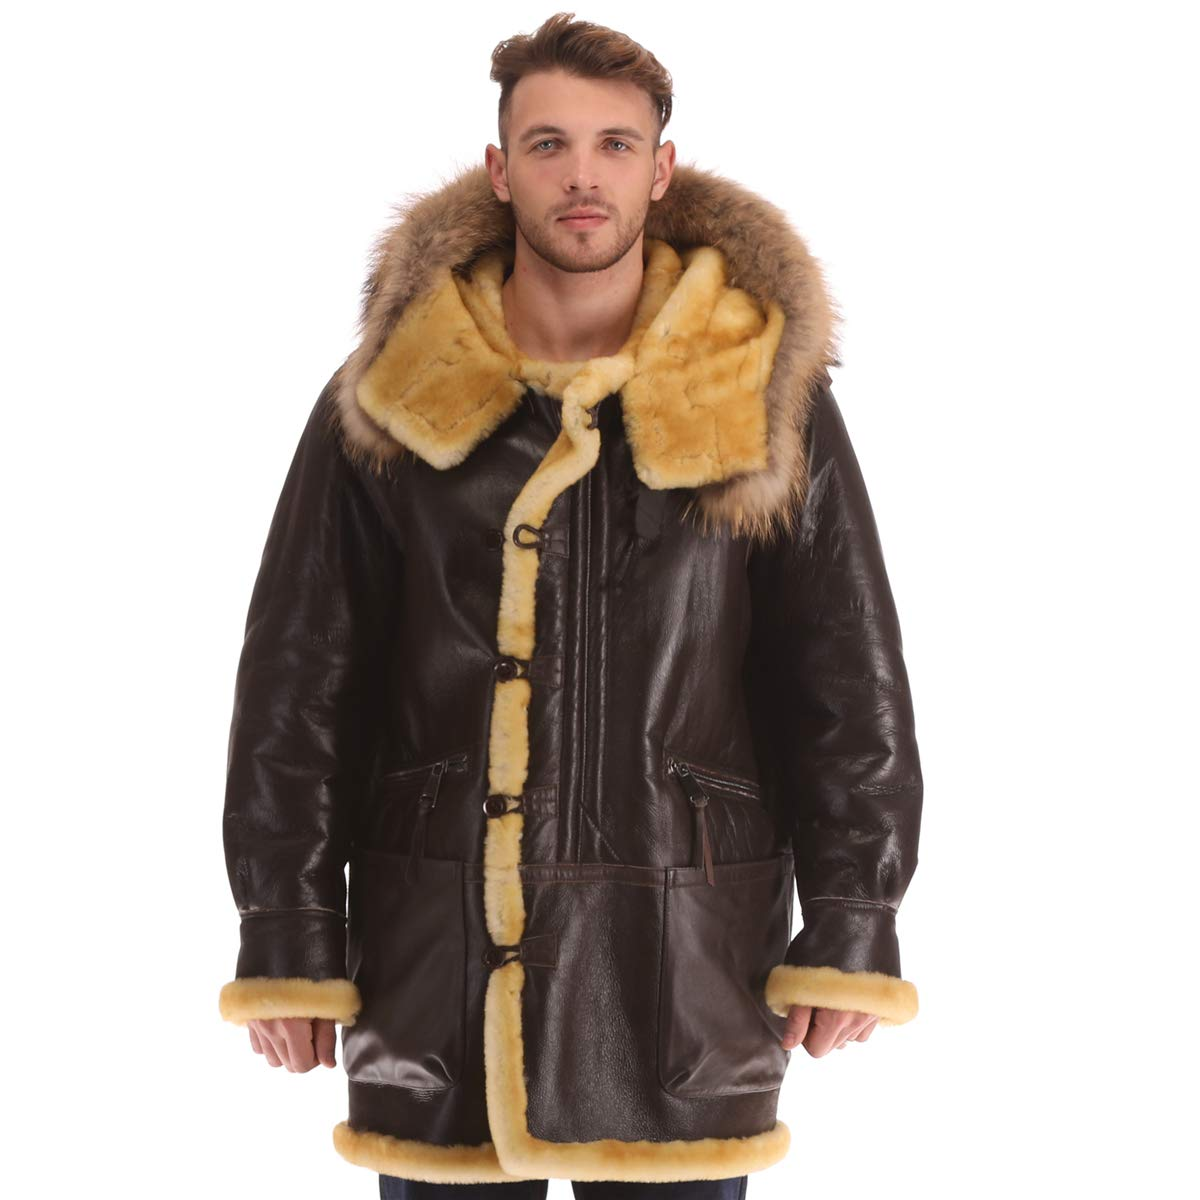 9405c1ed4e0 Men s B3 Real Shearling Sheepskin Bomber Leather Flying Aviator Jacket Fur  B7 World War 2 at Amazon Men s Clothing store